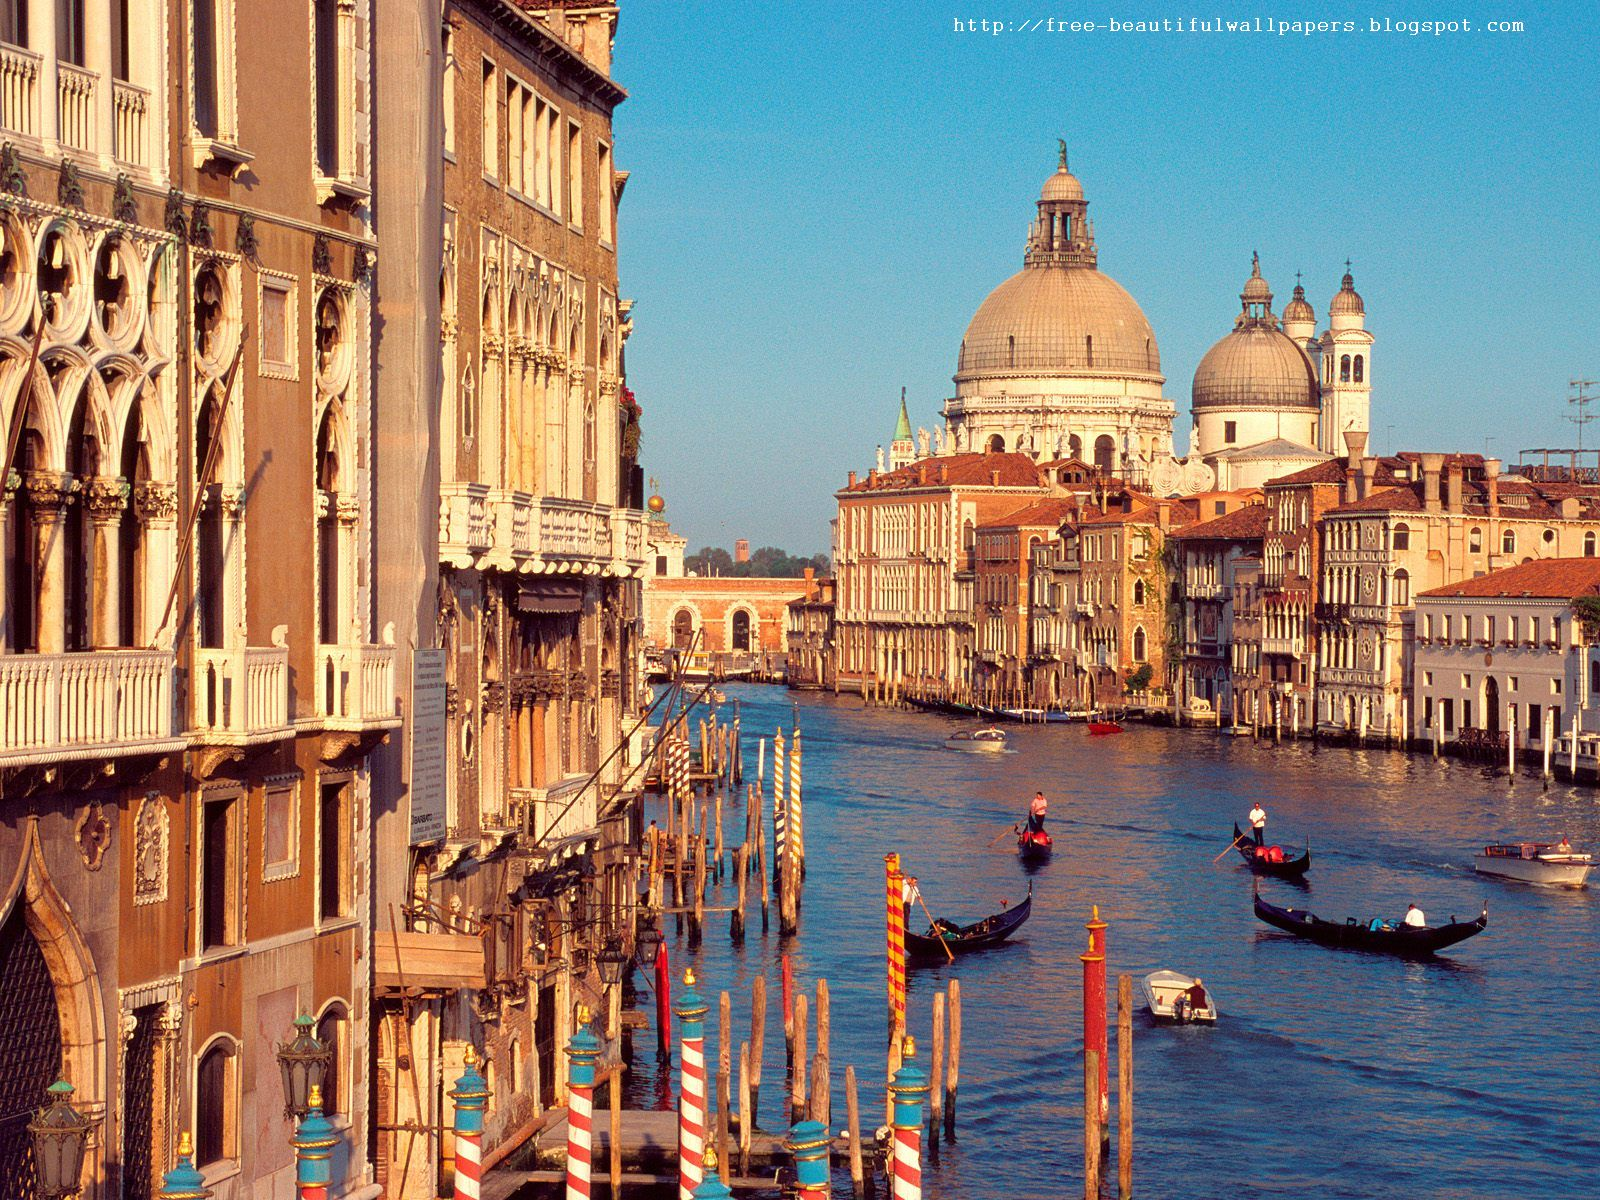 Free Beautiful Wallpapers Download: Beautiful Italy Place